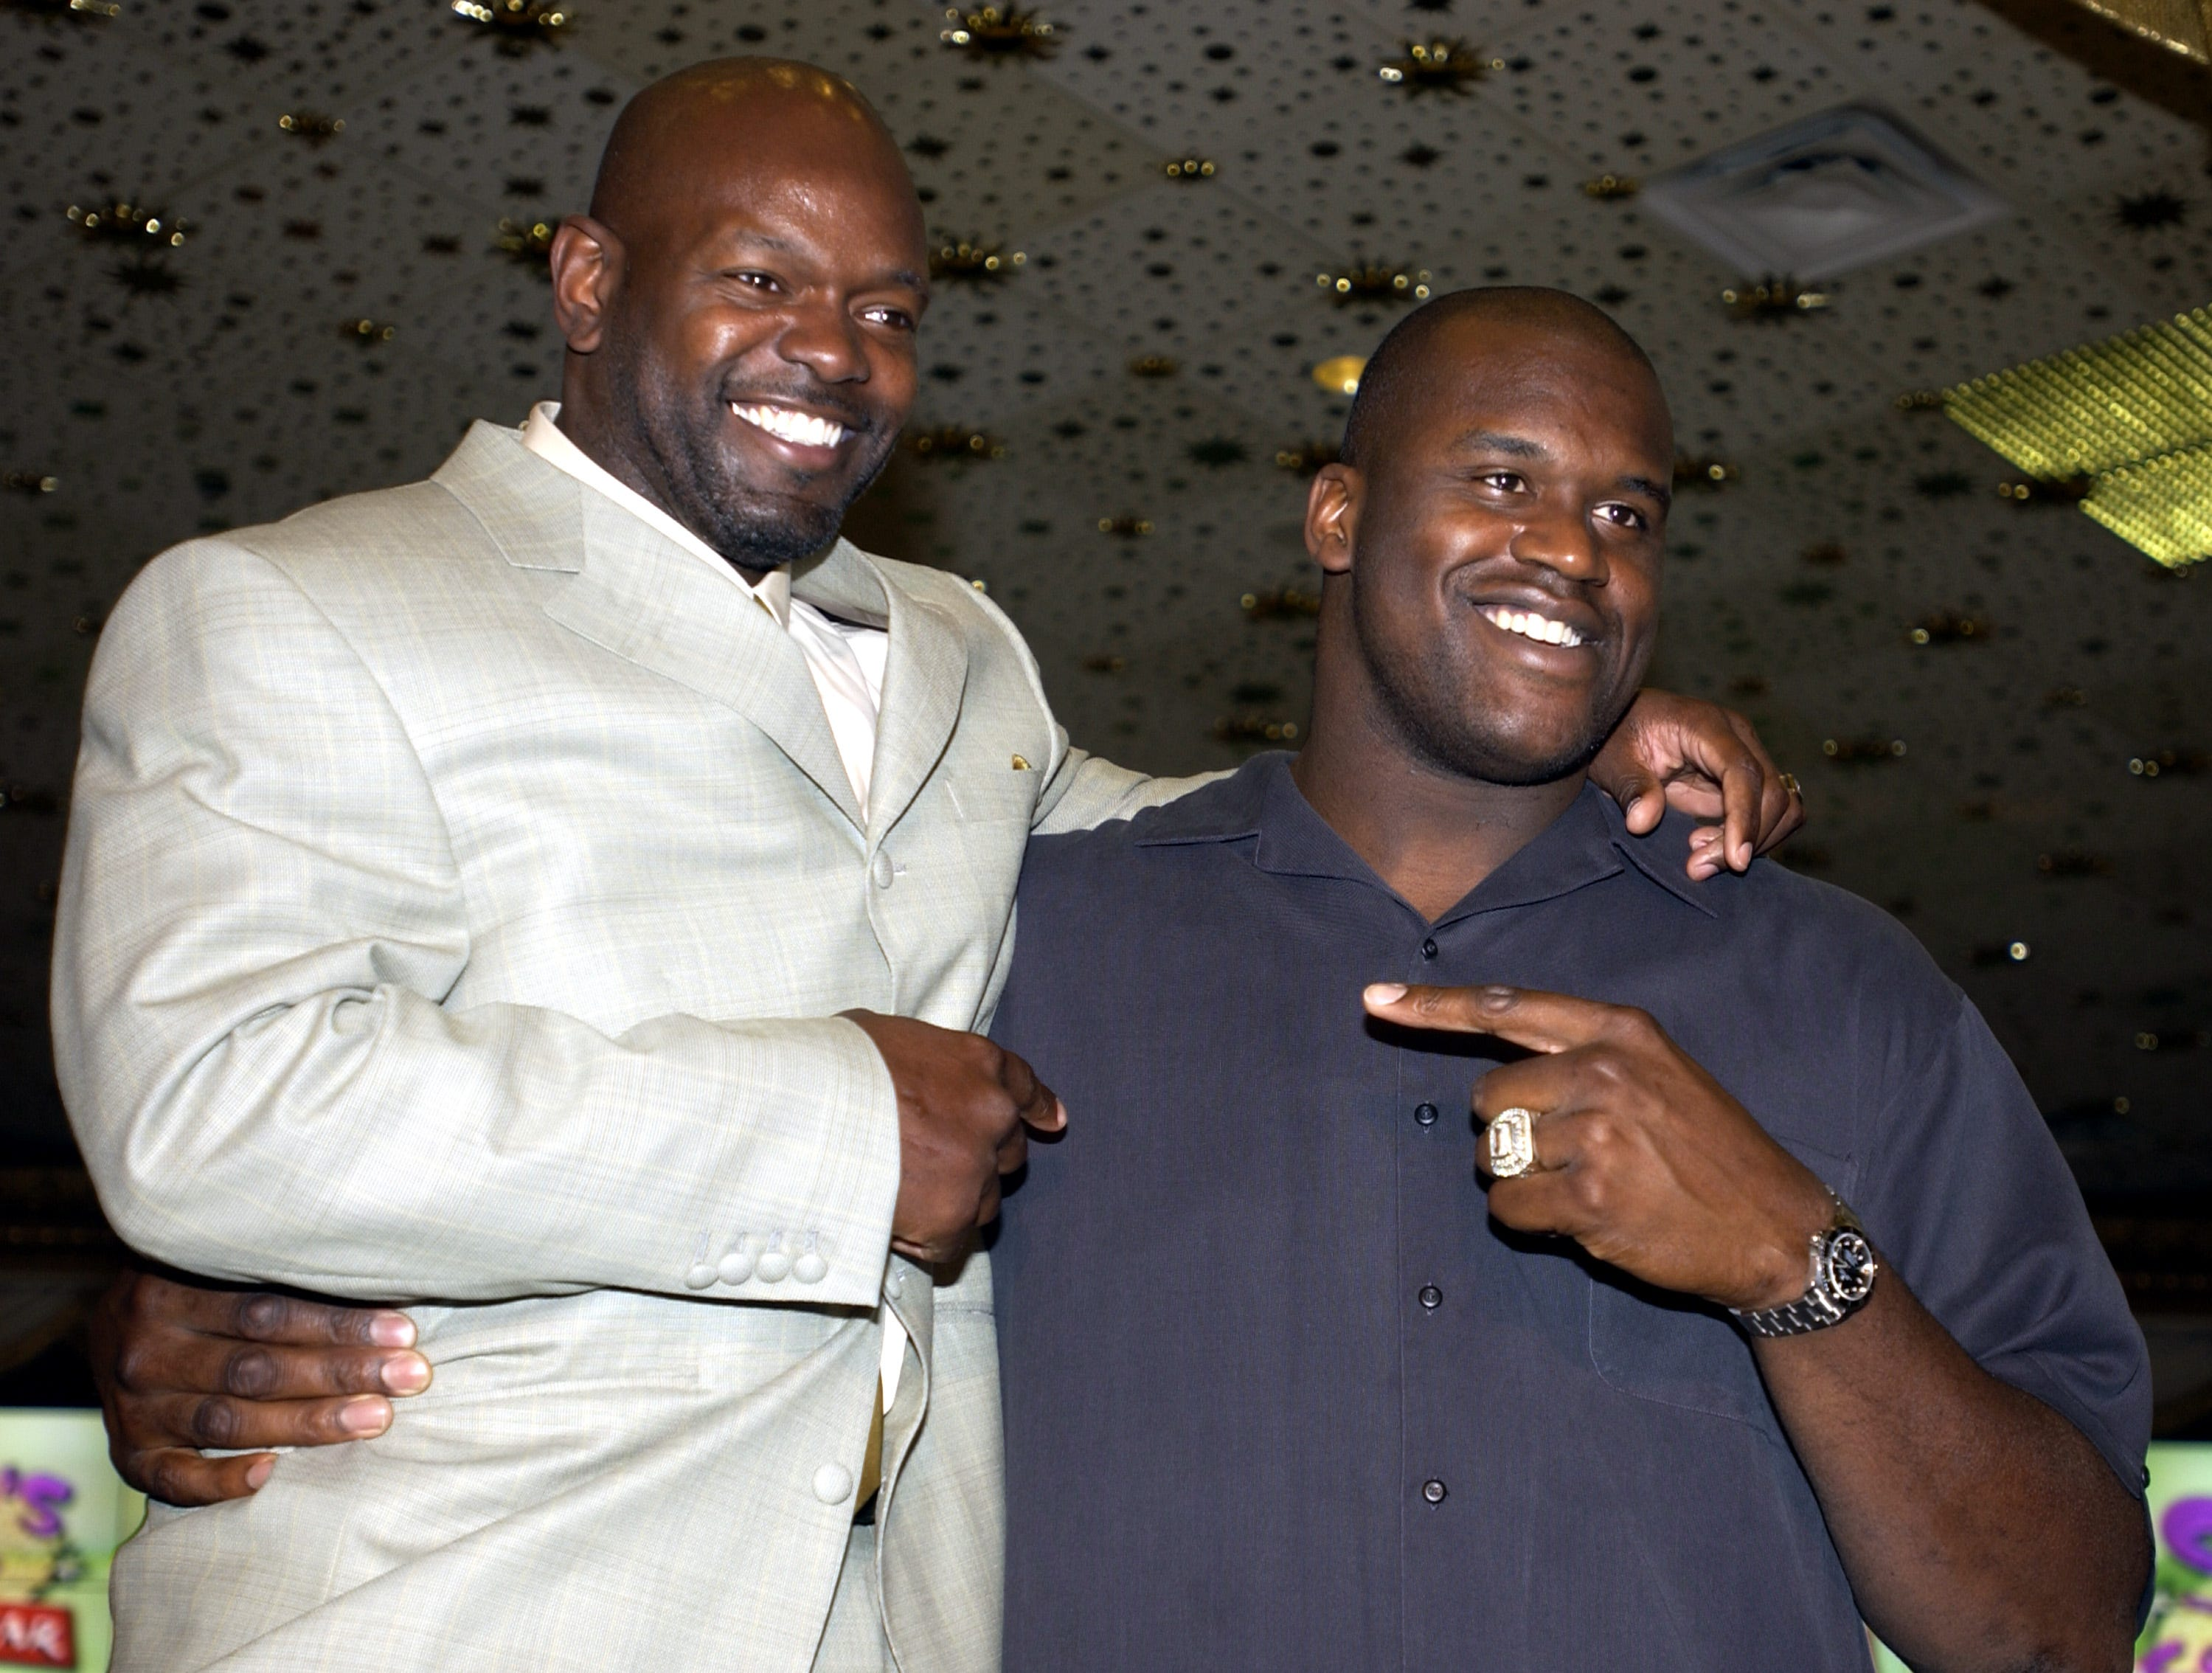 401966 03: L.A. Laker basketball player Shaquille O''Neal (R) and Dallas Cowboy football player Emmitt Smith pose for a photograph during a joint press conference March 7, 2002 at the MGM Grand in Las Vegas, NV. The two athletes announced the All-Star Comedy Roast II Charity Event, being held June 28, 2002 at the MGM Grand. (Photo by Scott Harrison/Getty Images)